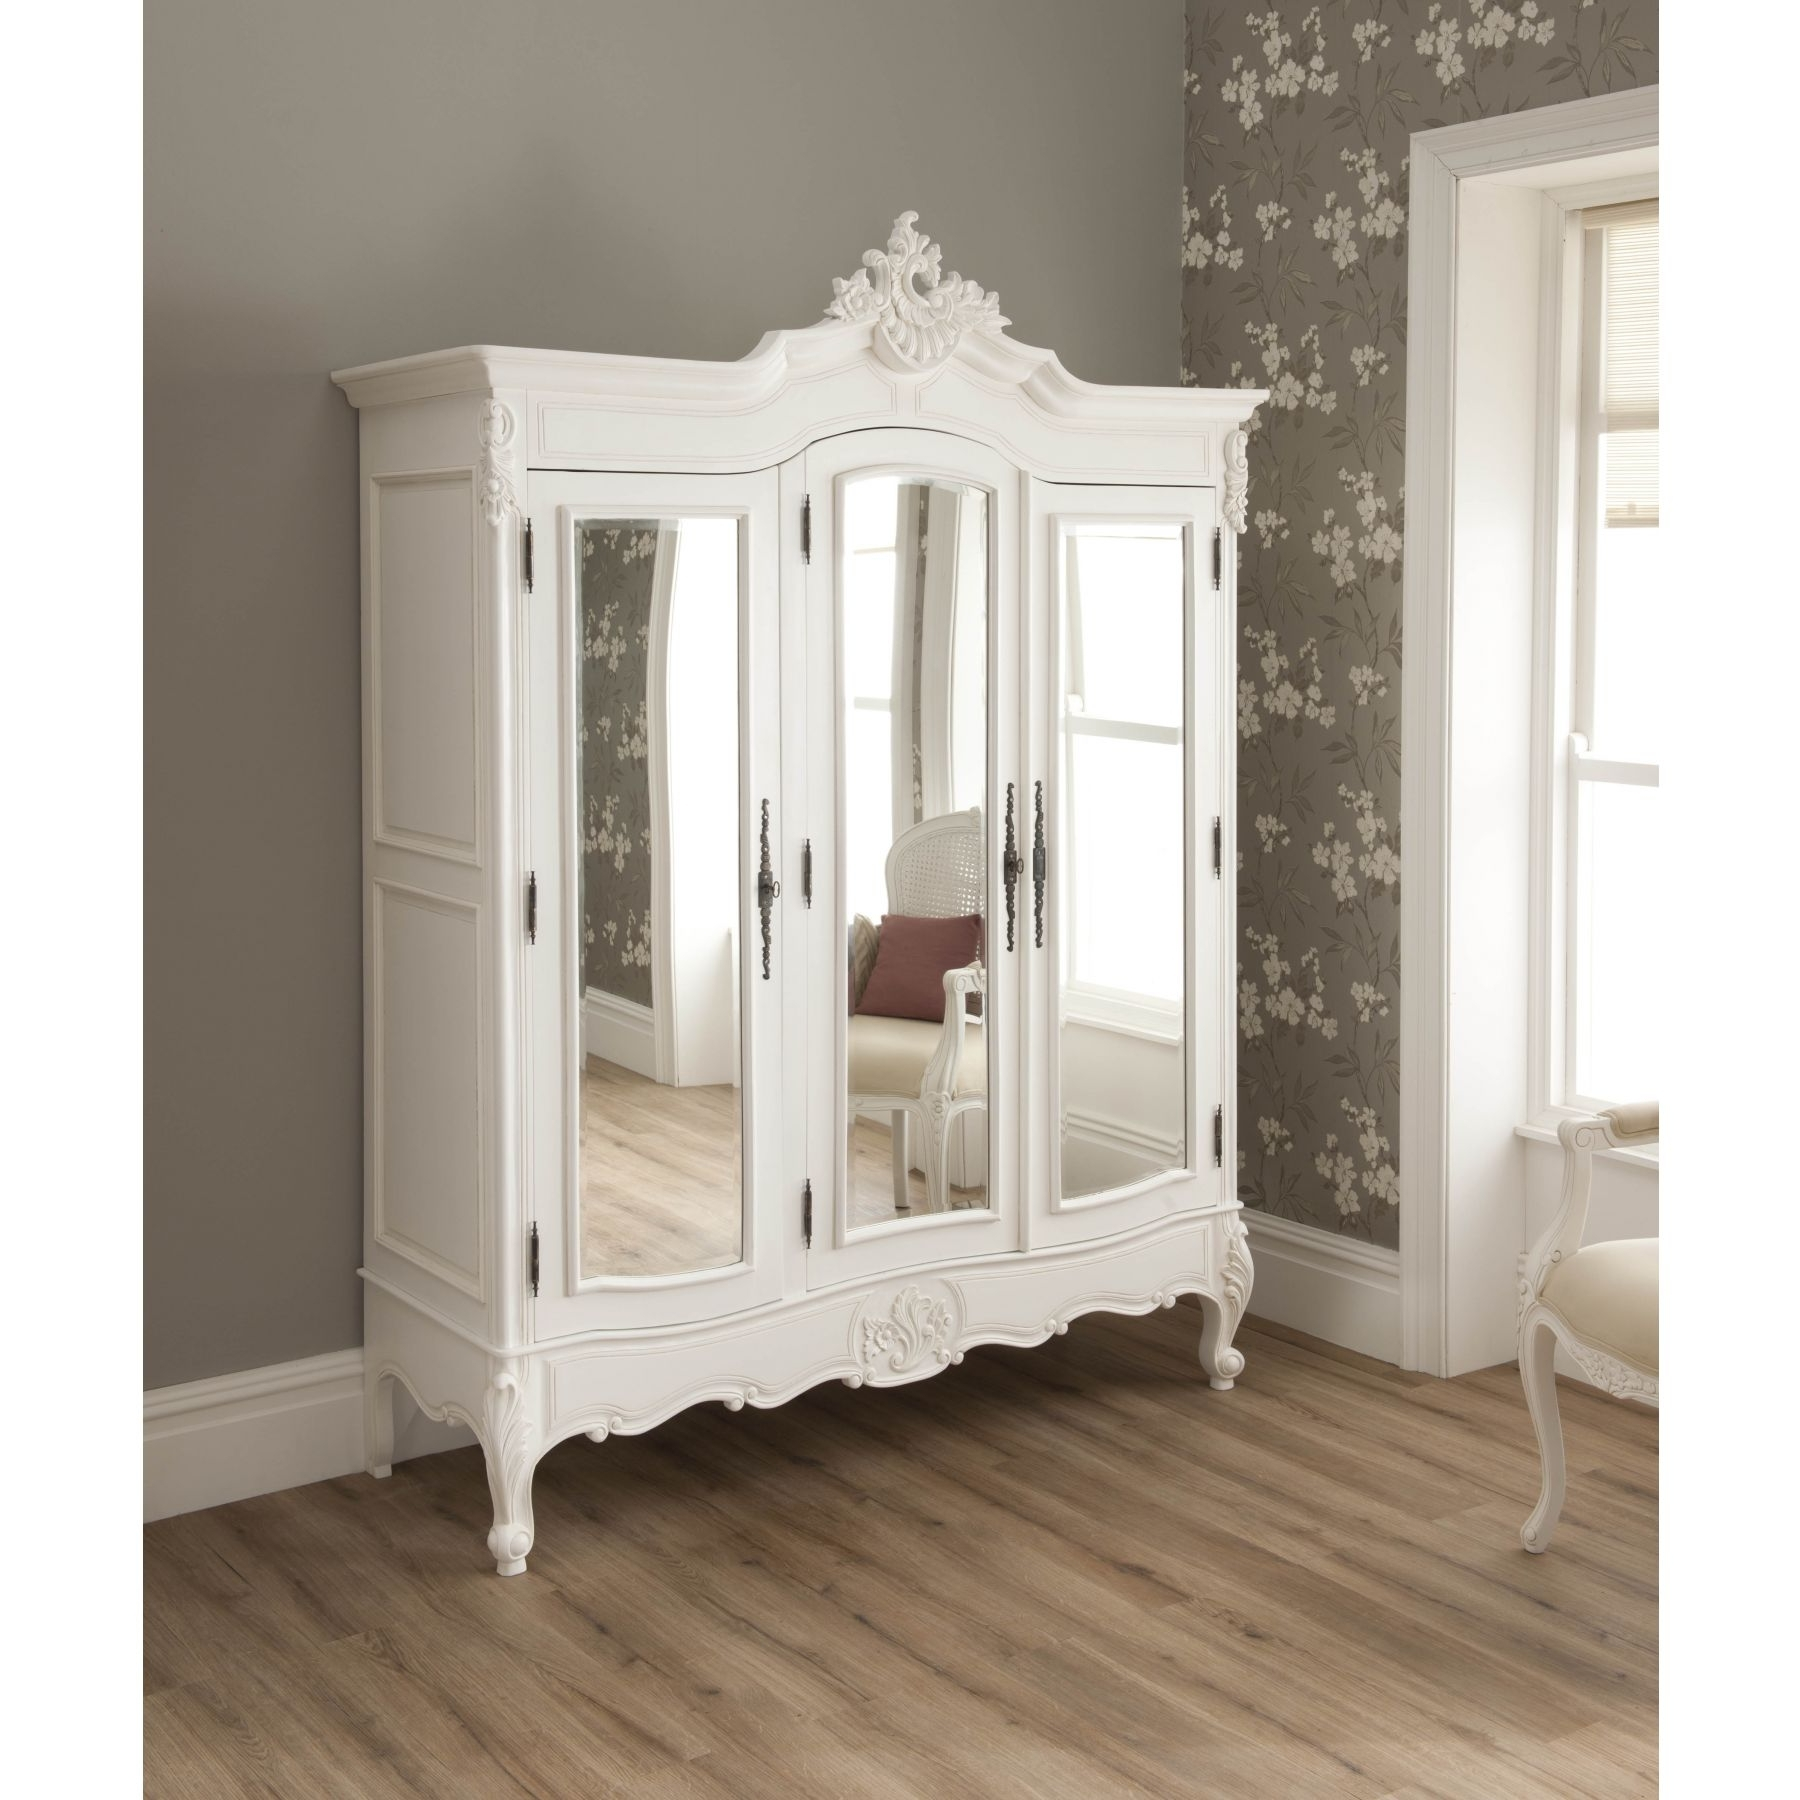 Popular White French Style Wardrobes Intended For La Rochelle Shabby Chic Antique Style Wardrobe (View 4 of 15)